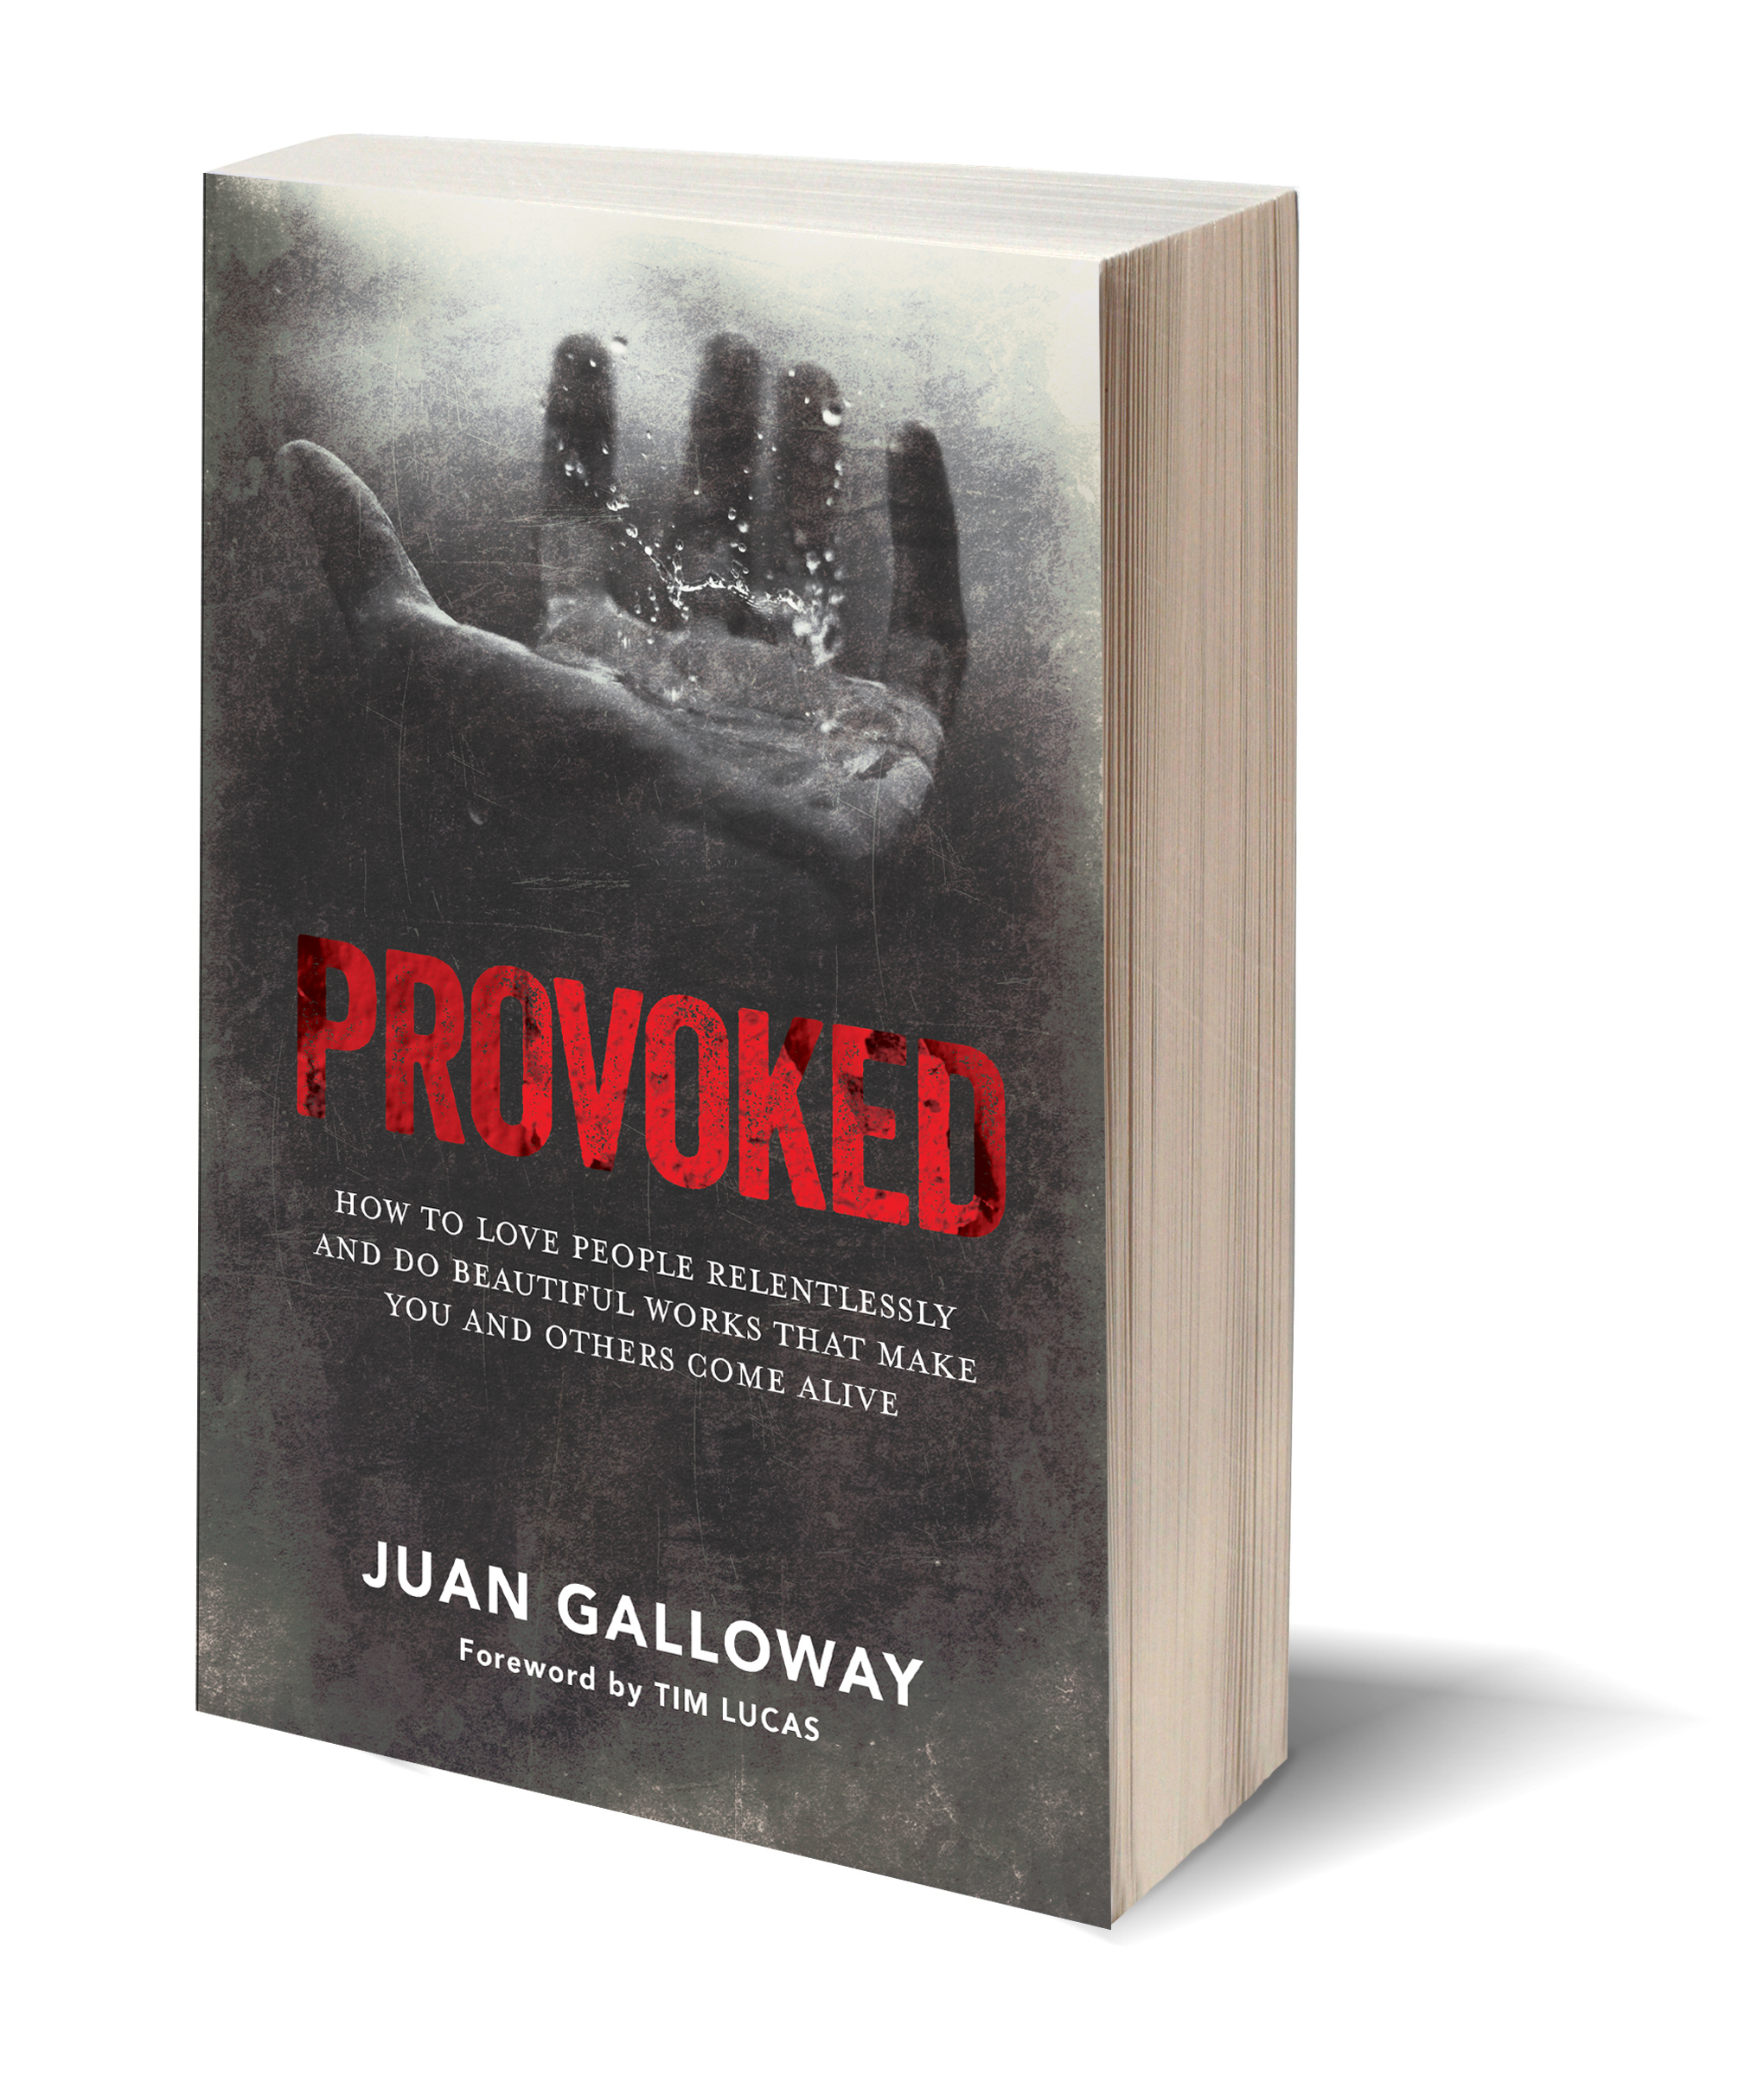 A new book by President & CEO Juan Galloway - Compelling stories from 17 years of working with people challenged with homelessness in NYC.50% of profits go to support New York City Relief.